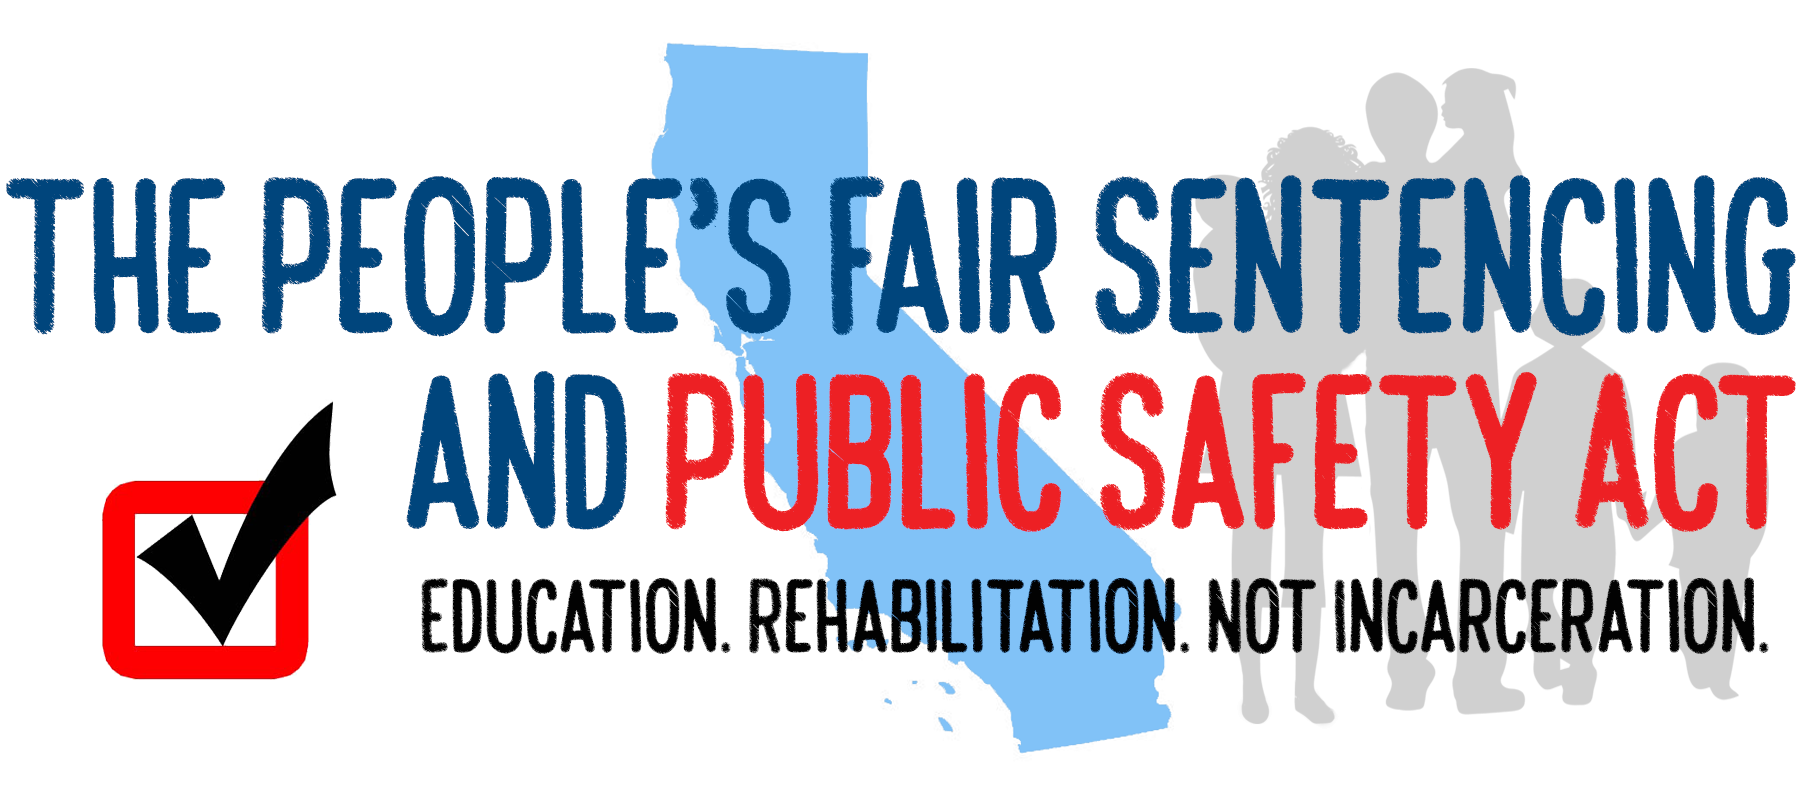 The People's Fair Sentencing and Public Safety Act v2.png